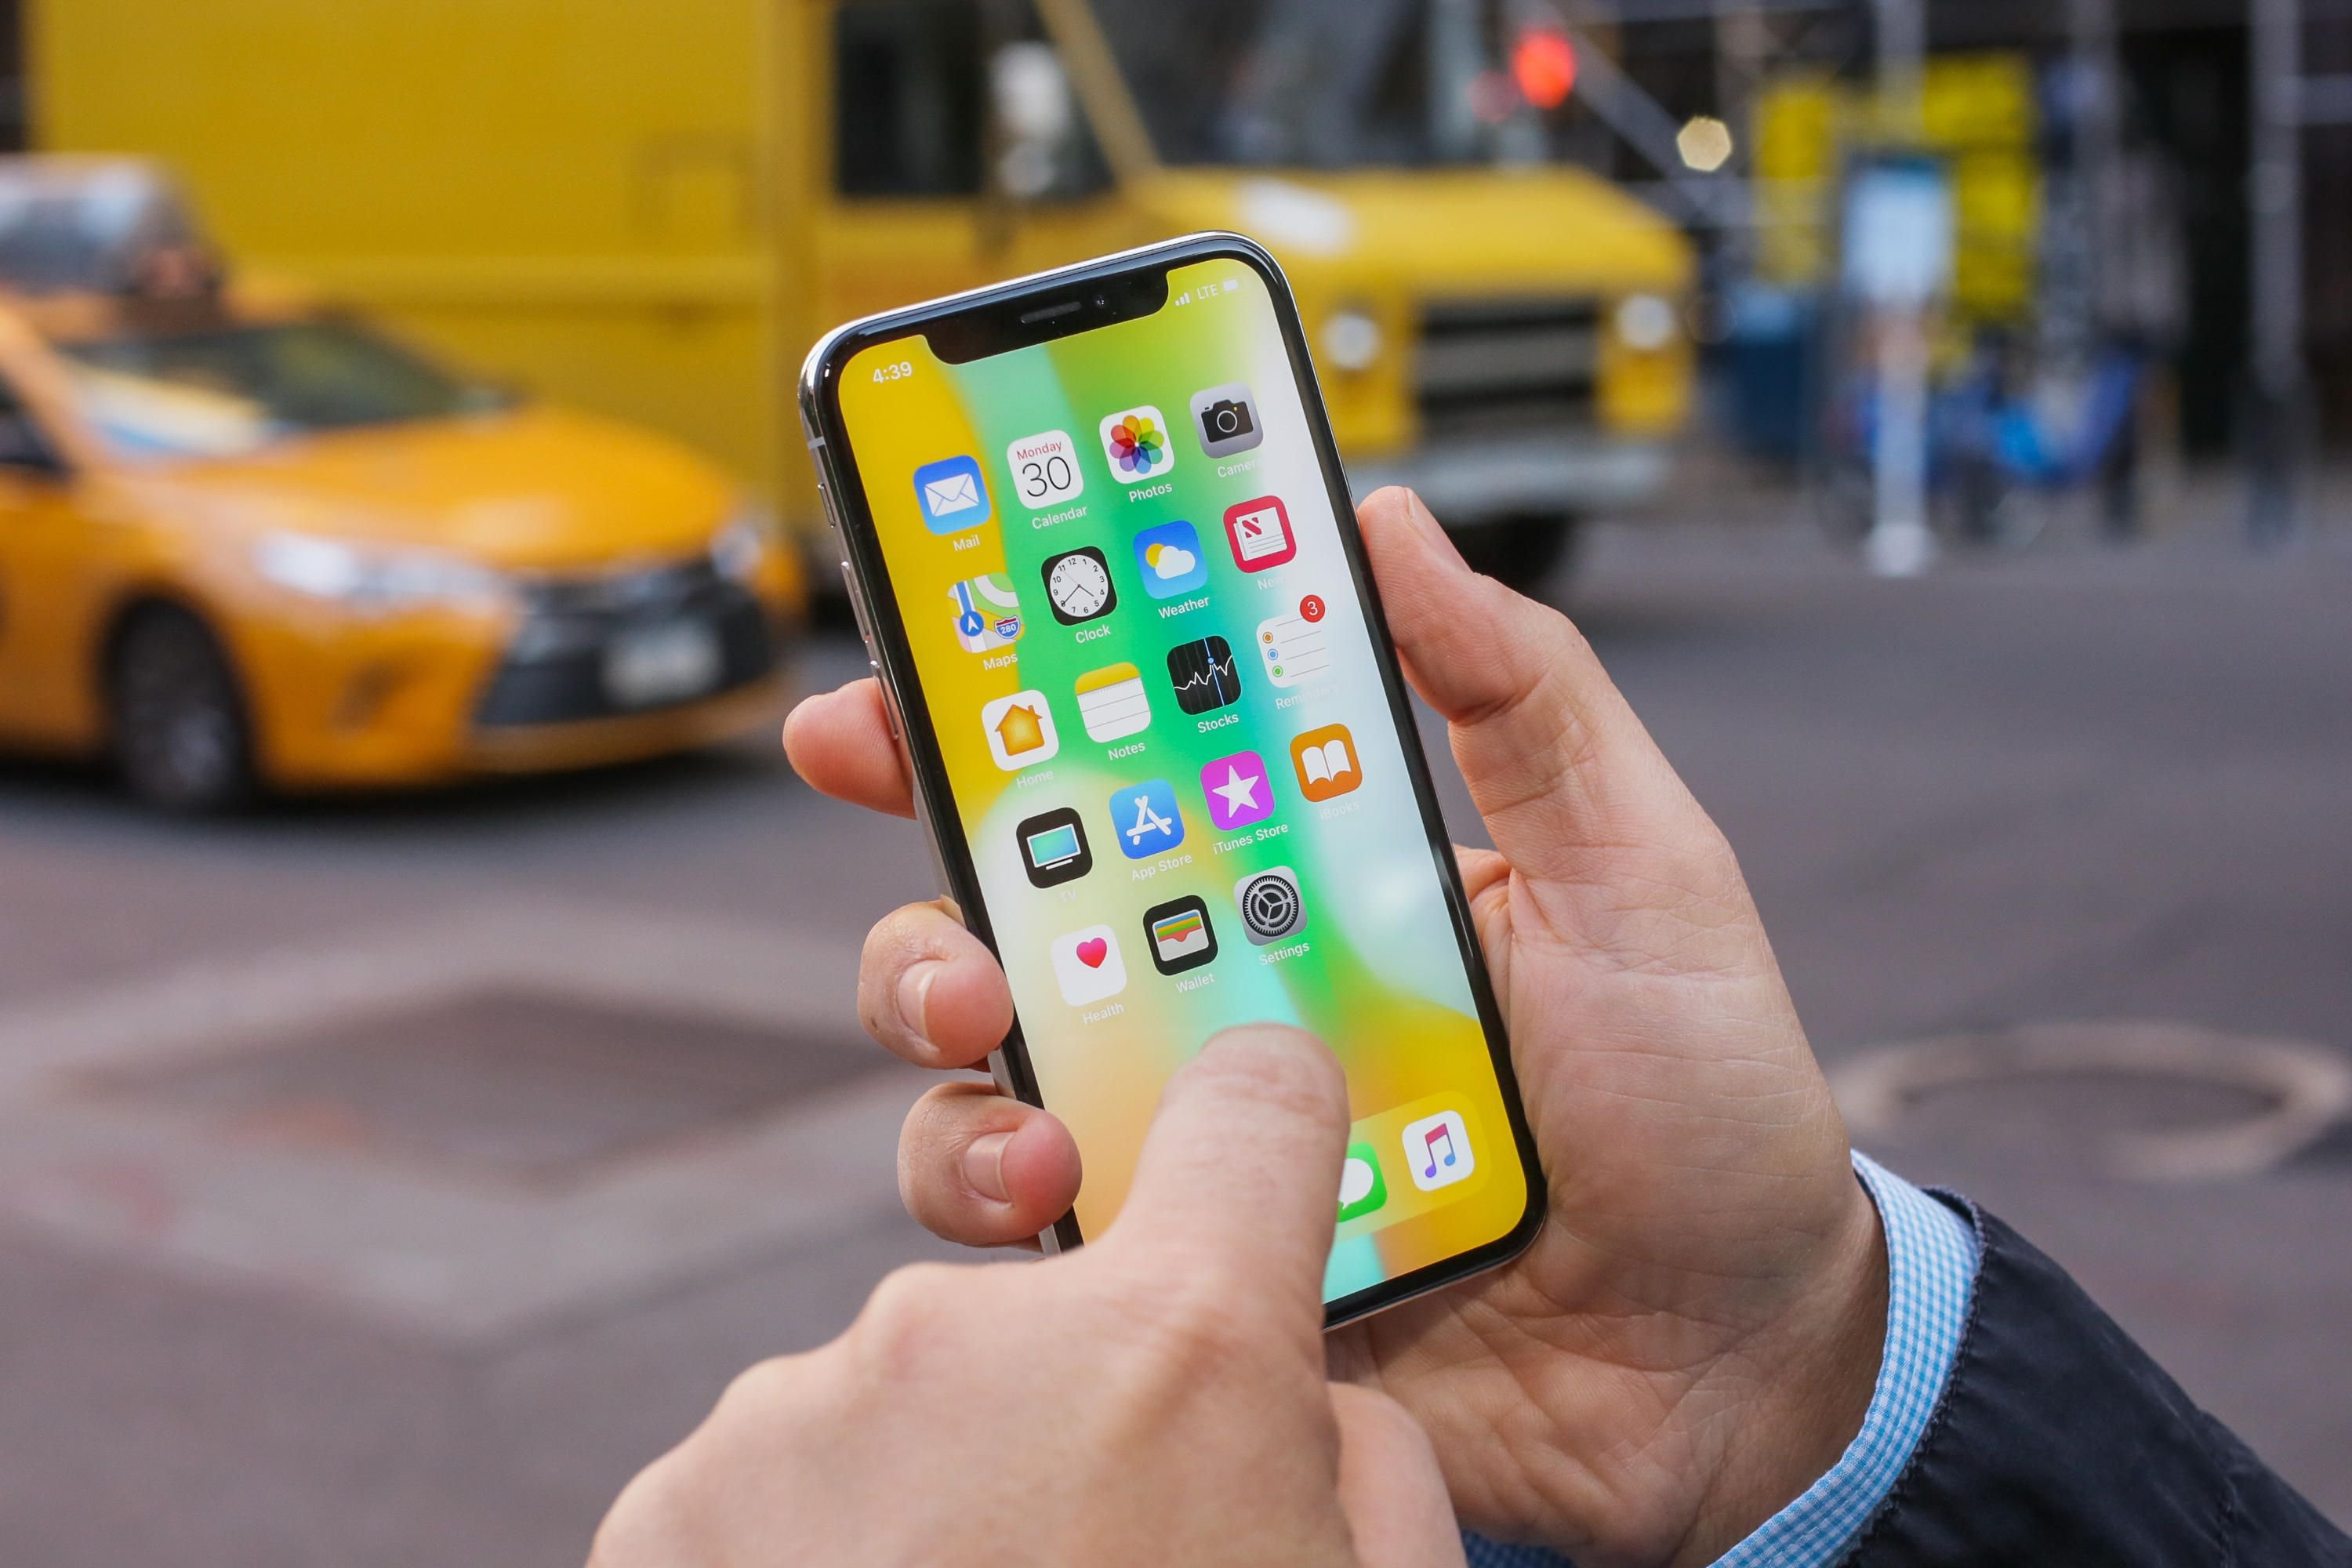 iphone, iphone x 2018, iphone 2018, apple, iphone xeberleri, iphone x plus